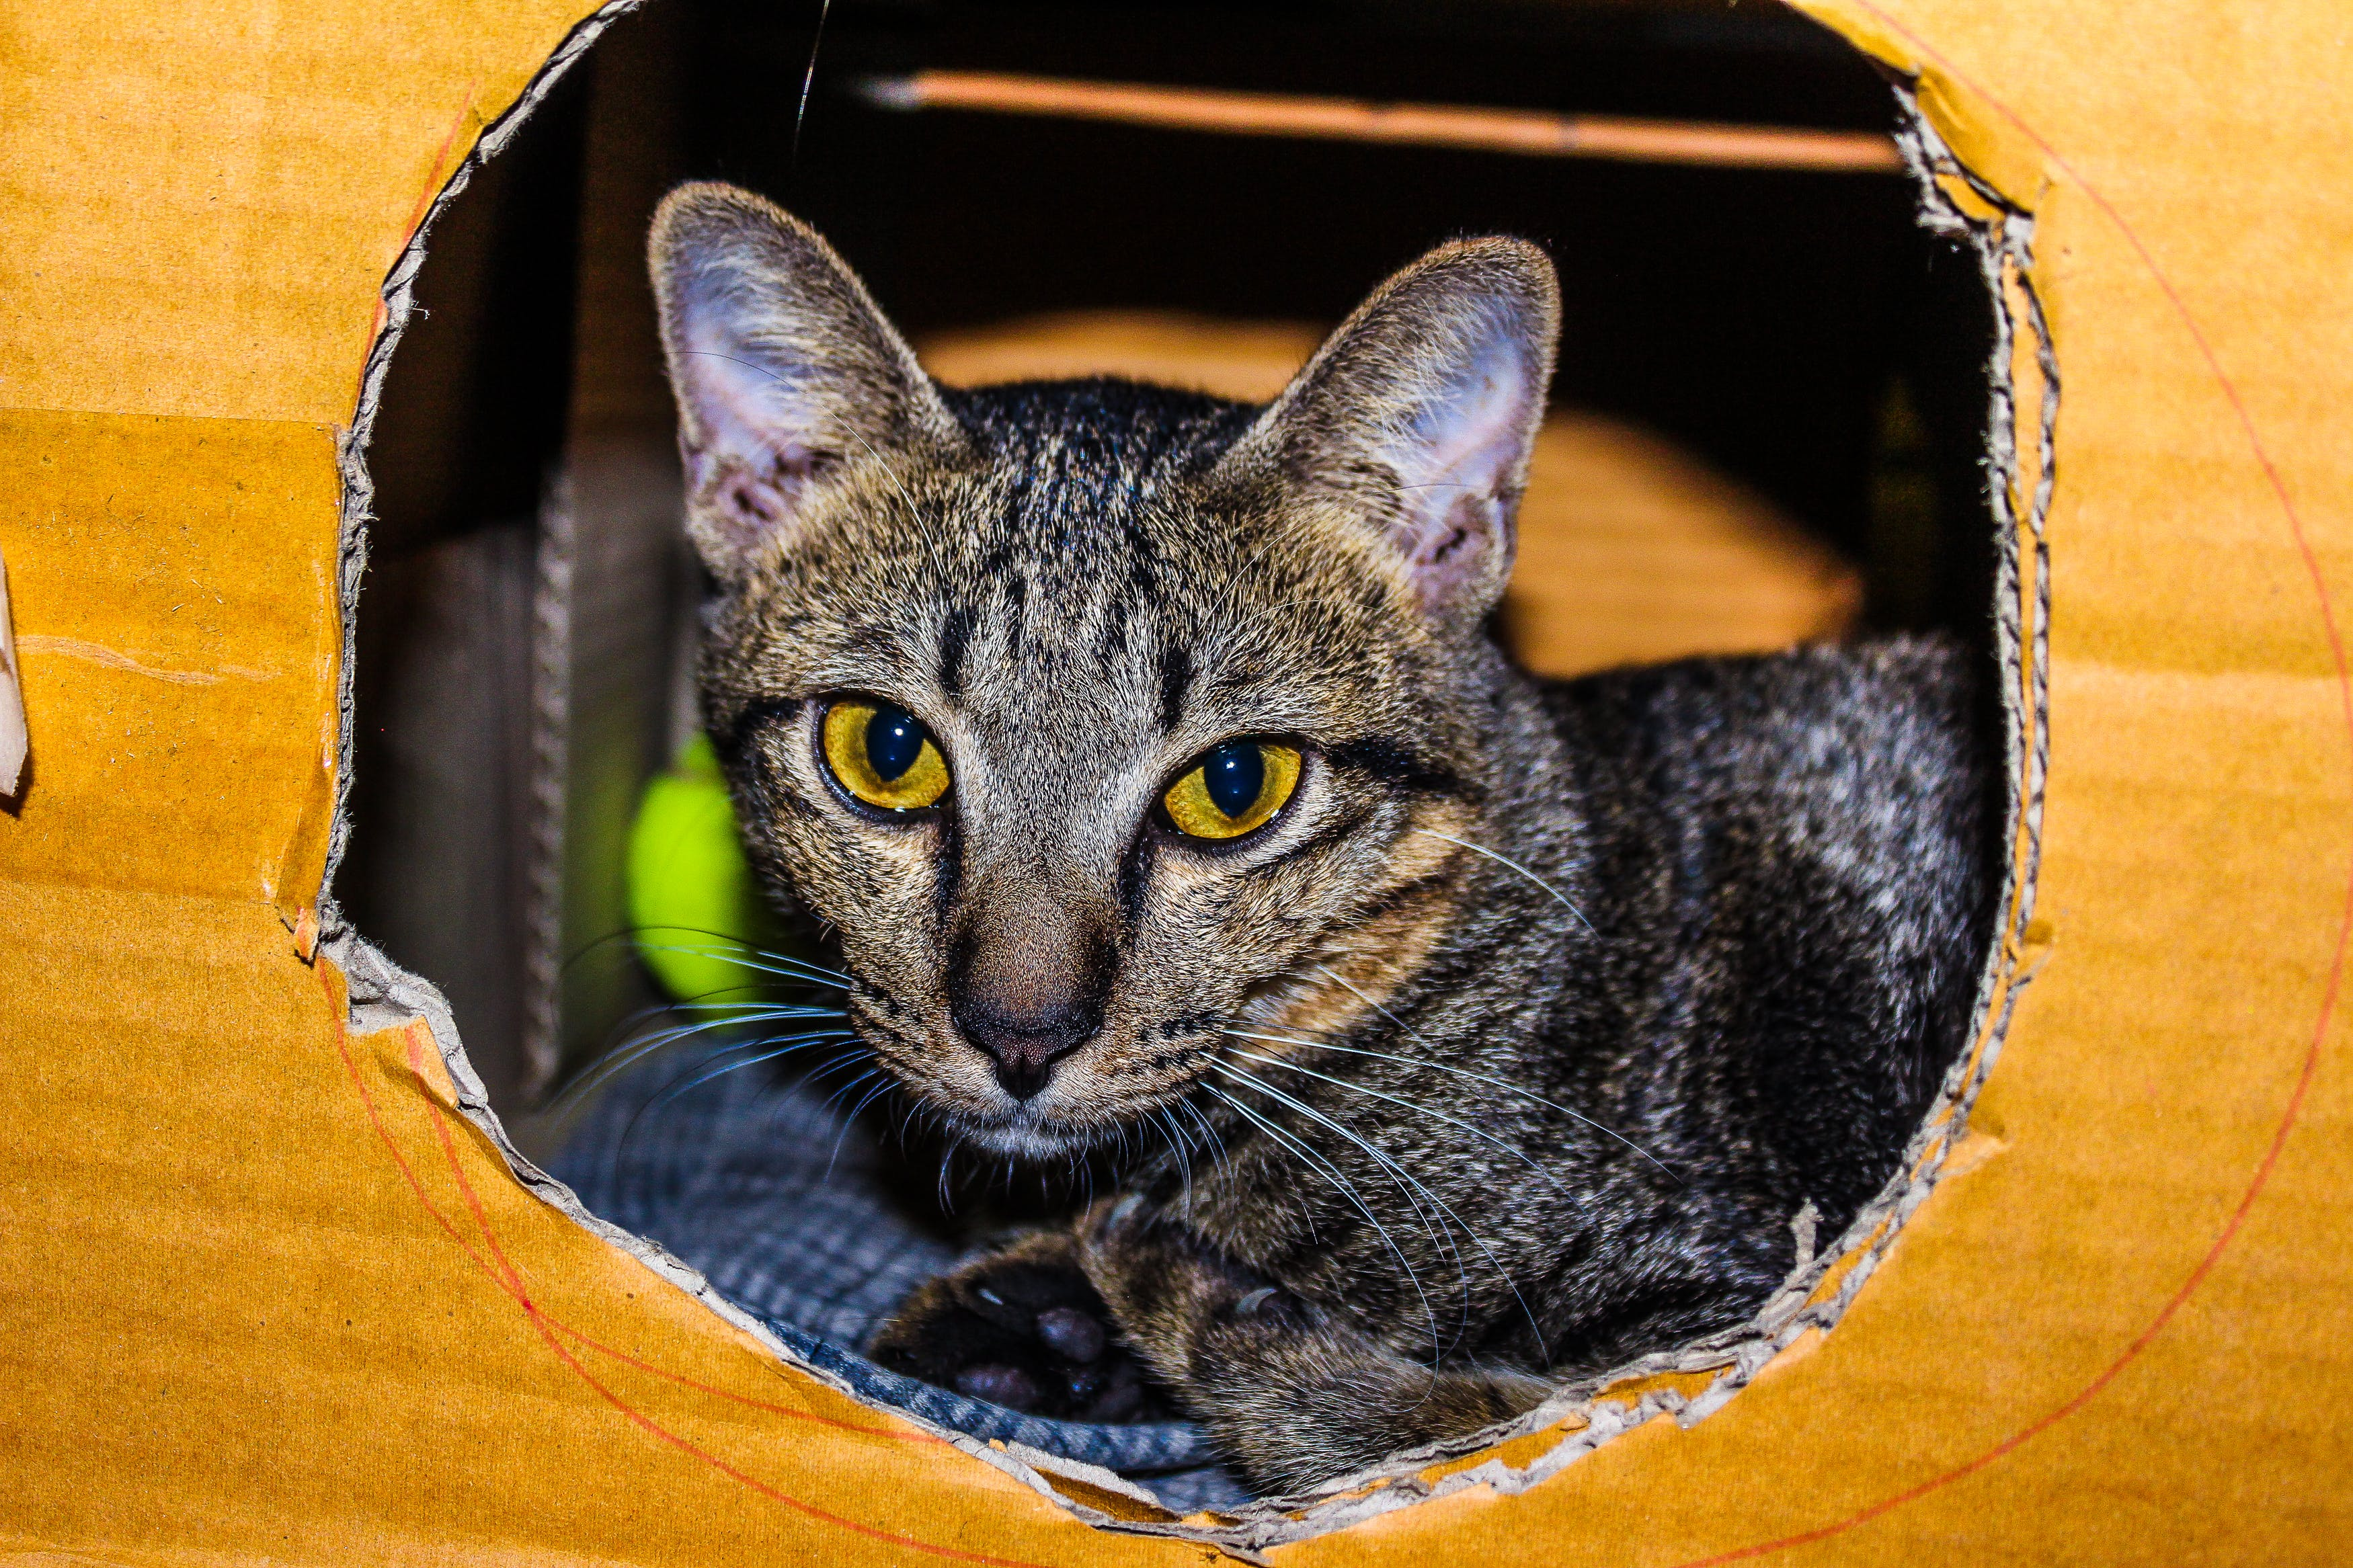 Brown Tabby Cat Inside Cardboard Box